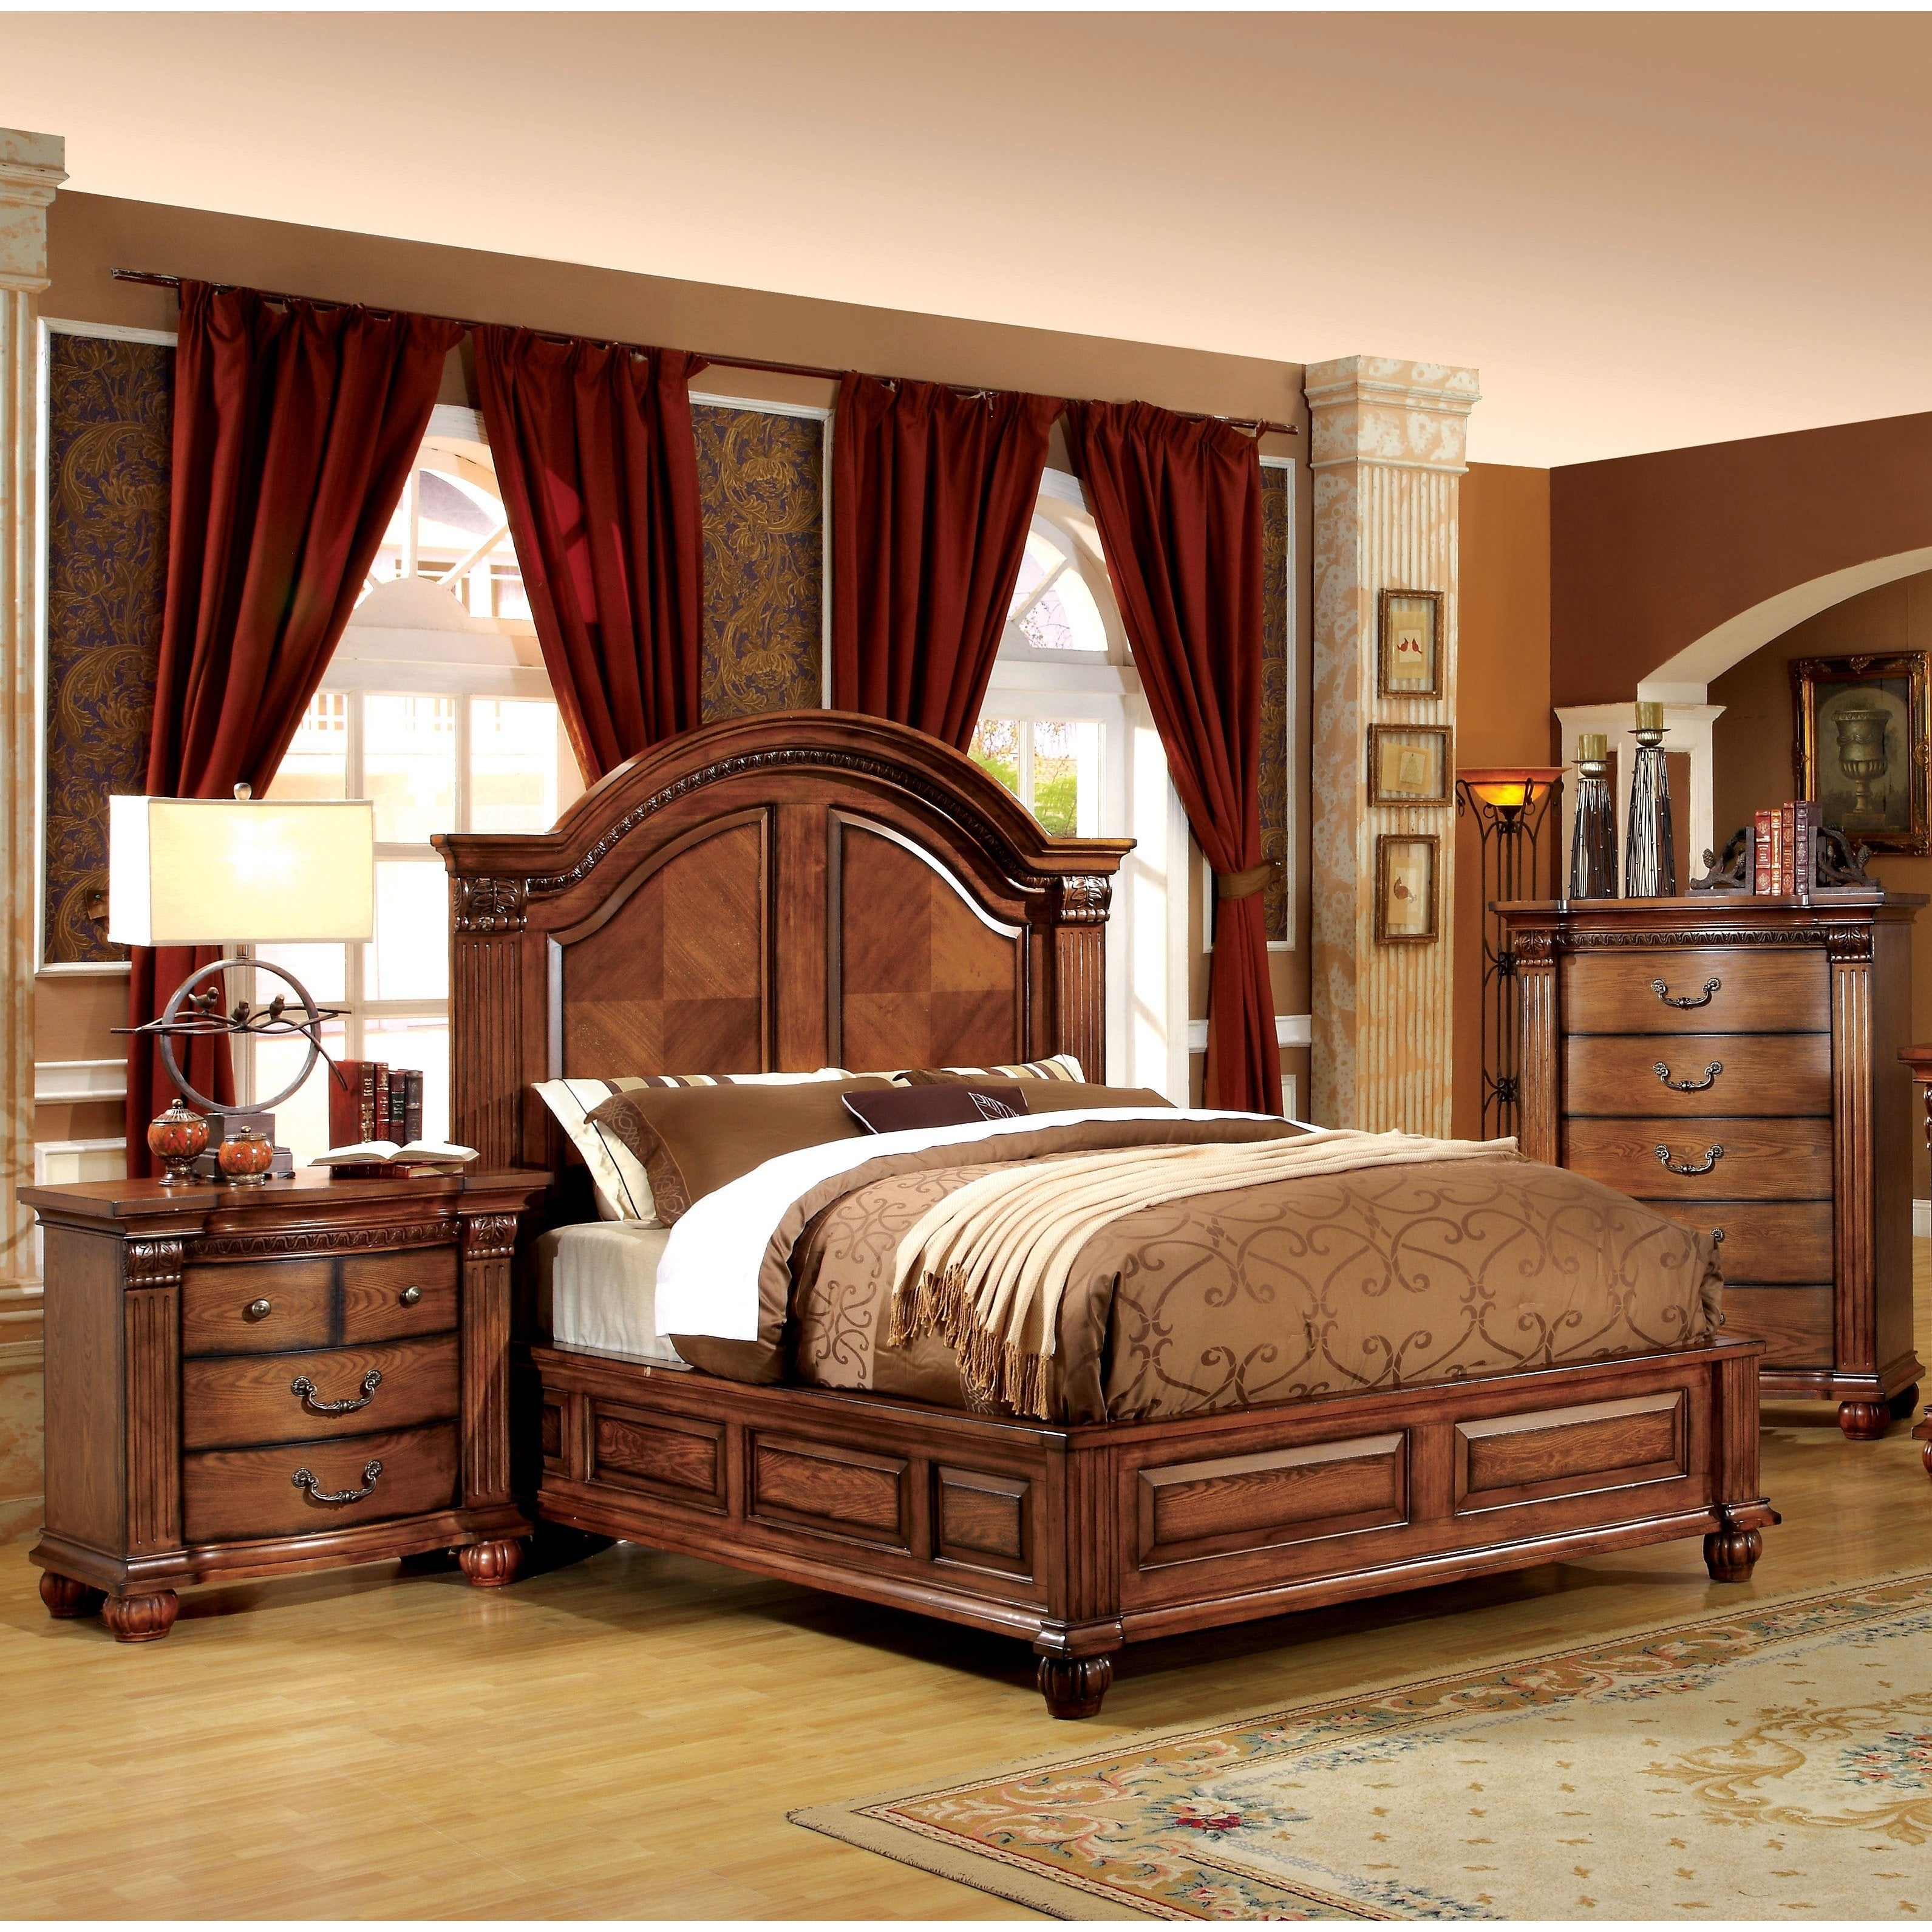 Furniture of America Heb Traditional Oak 2-piece Bedroom Set